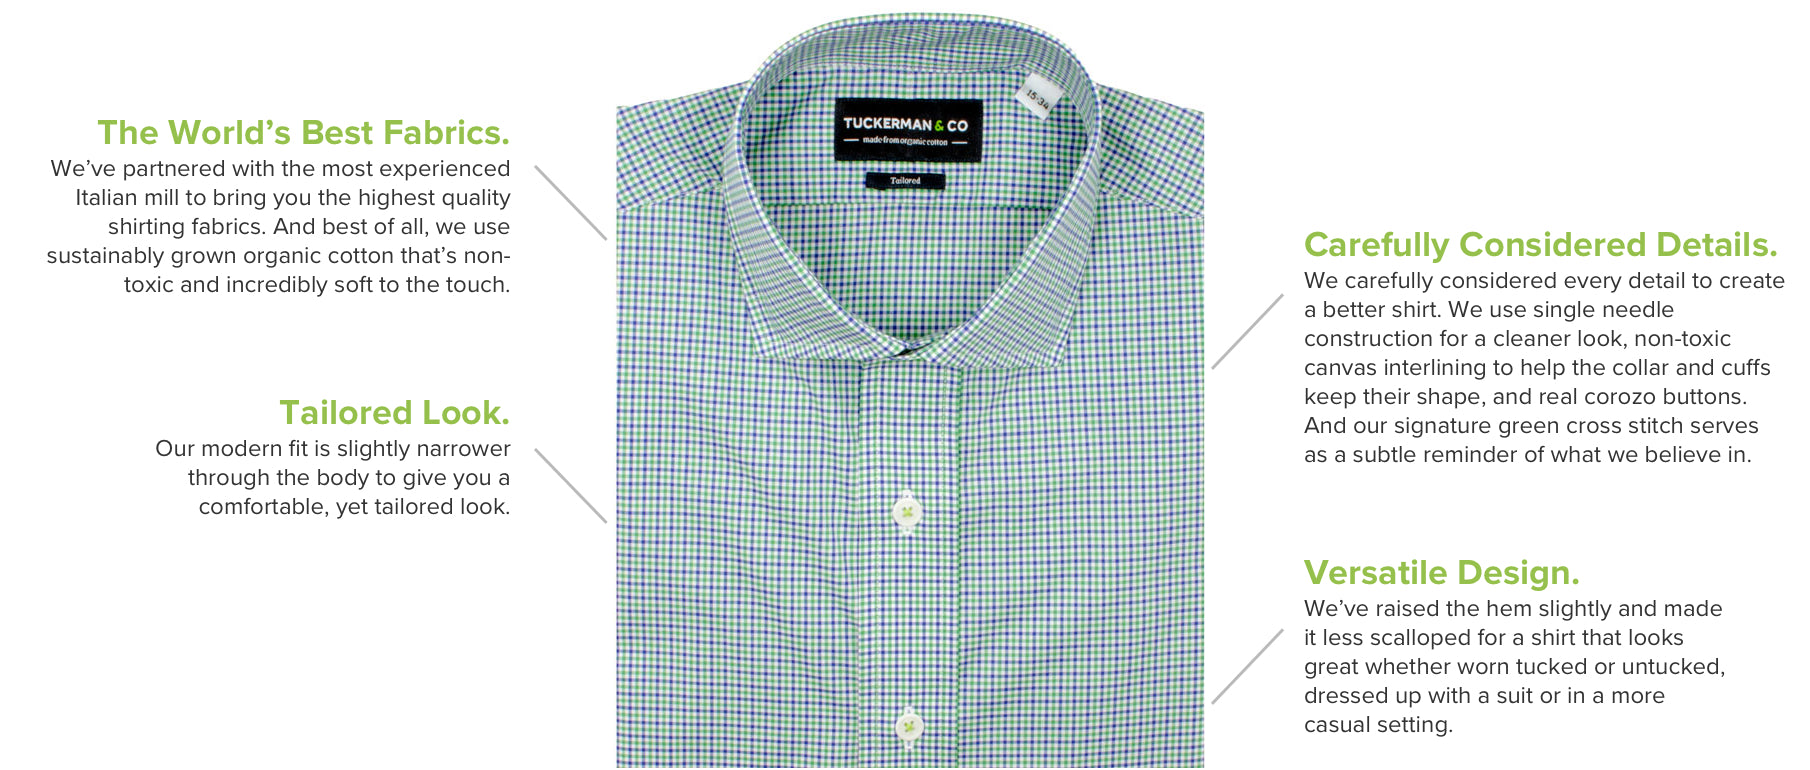 Italian Cotton Fabric For Shirts – EDGE Engineering and